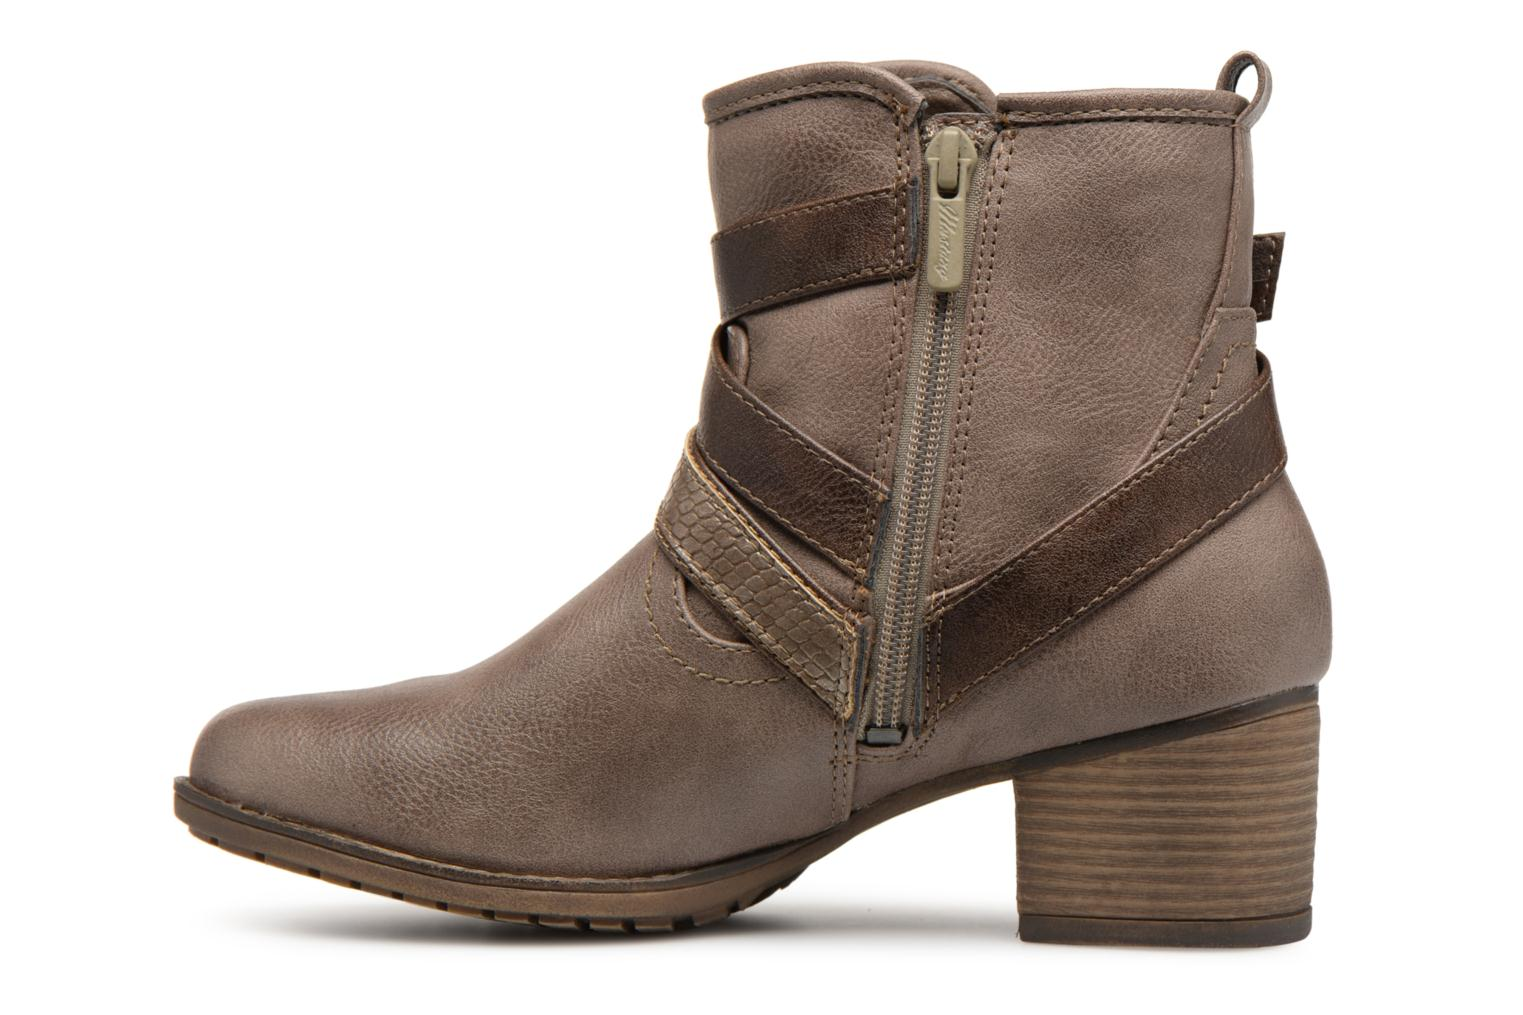 Tina Mustang Shoes Shoes Tina Mustang Taupe w604UBq